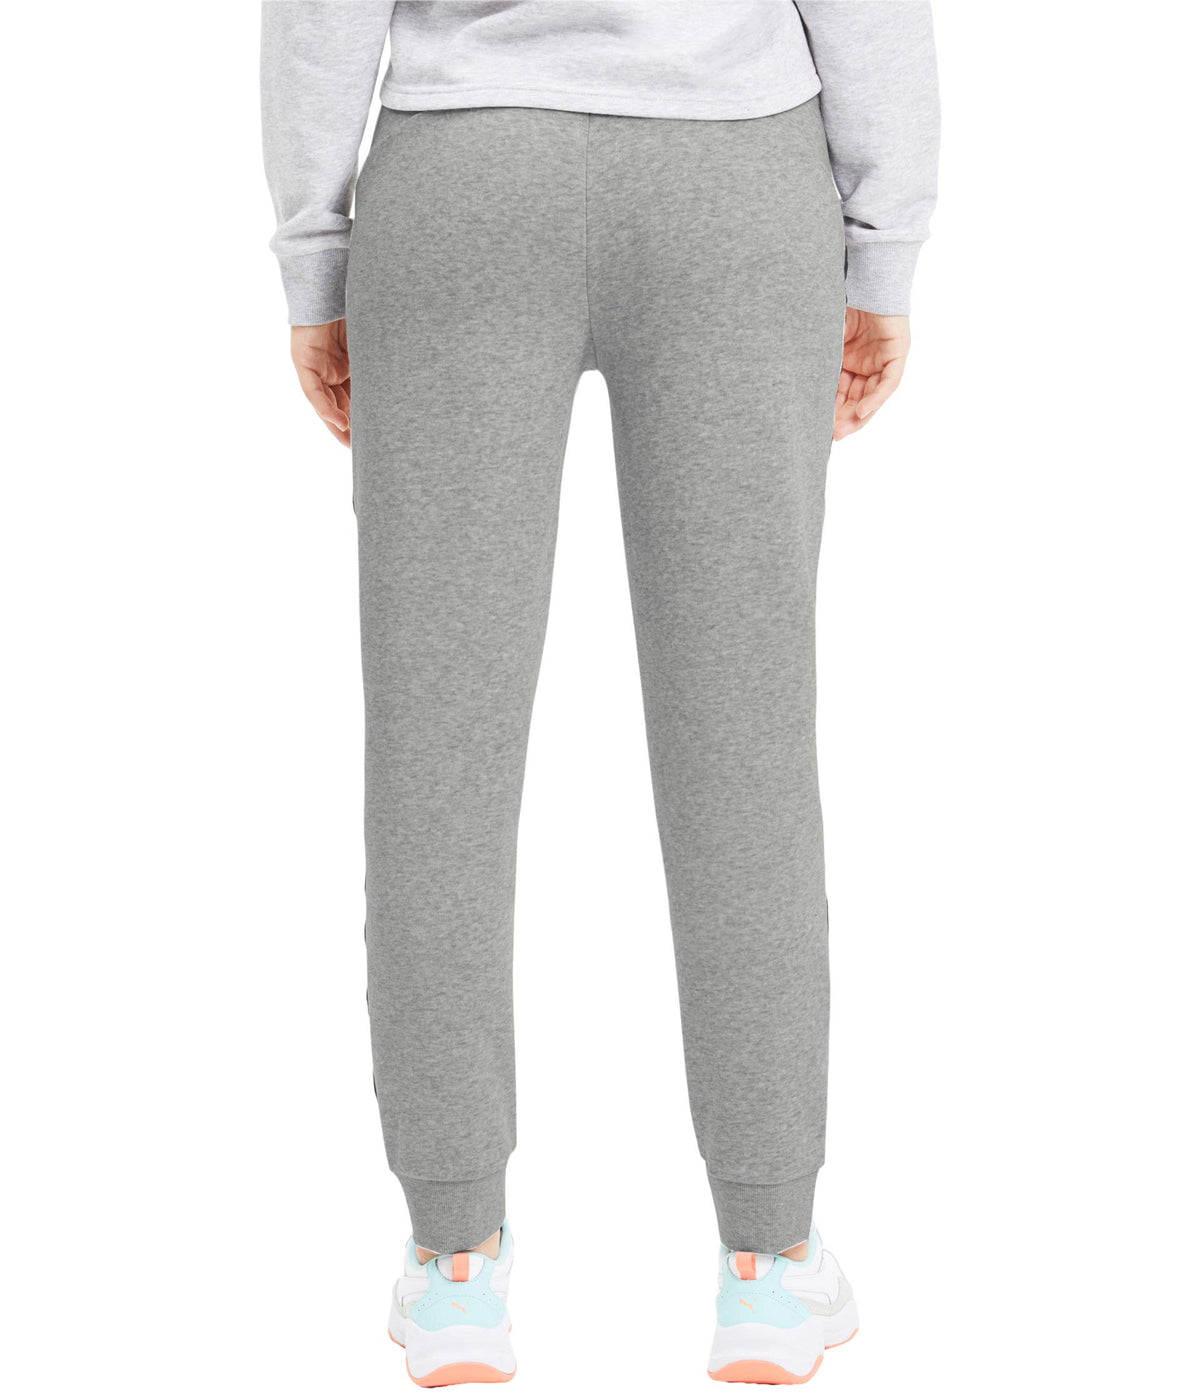 Amplified Fleece Pants